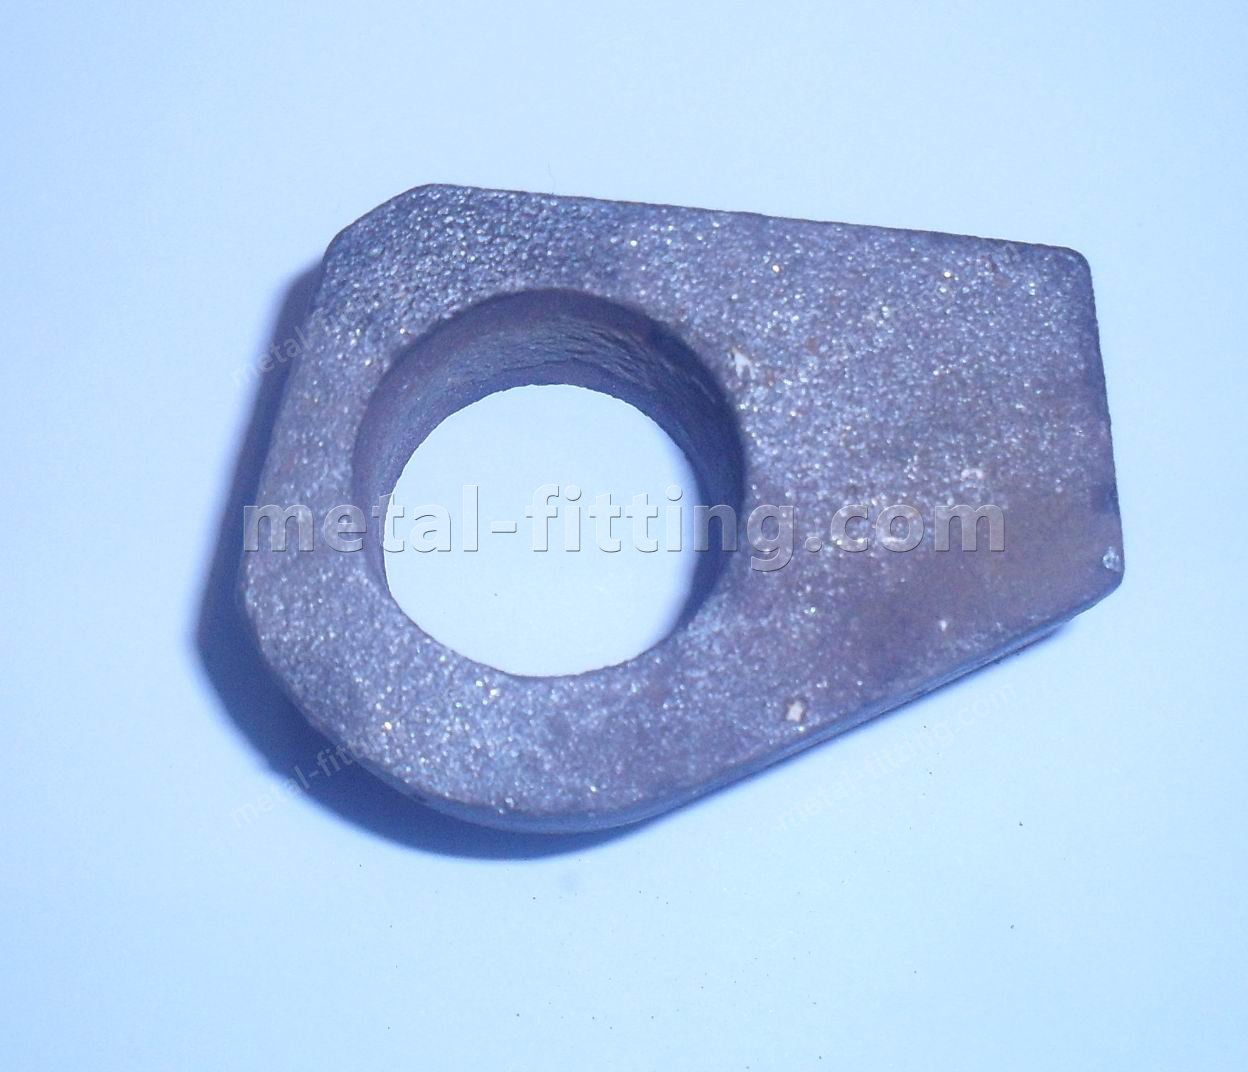 Steel Casted Parts and OEM Parts-建筑件 (13)